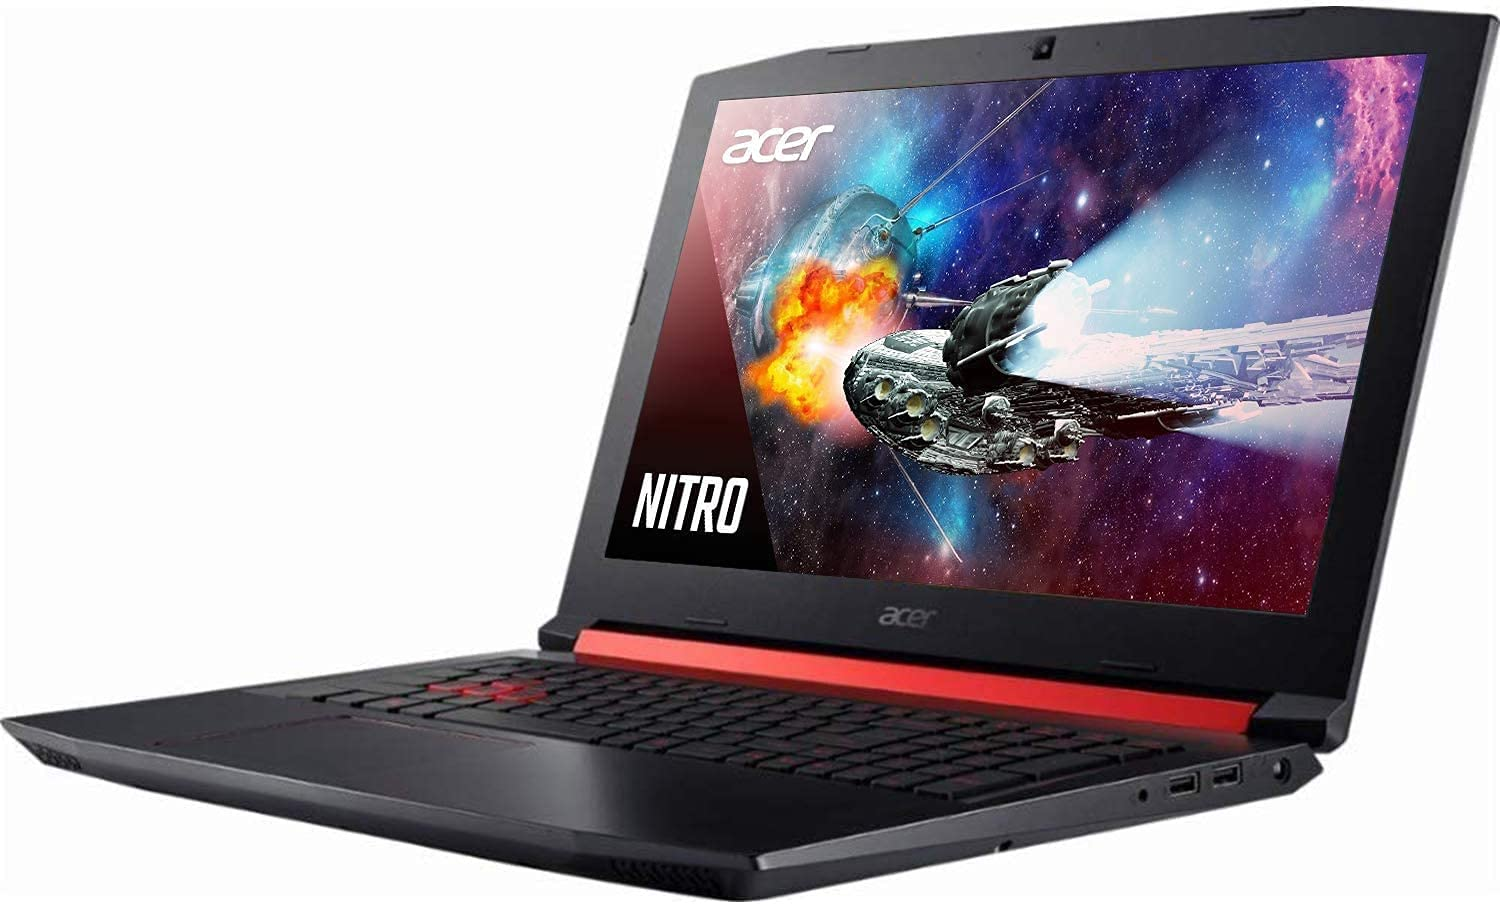 Best Gaming Laptop For Overwatch